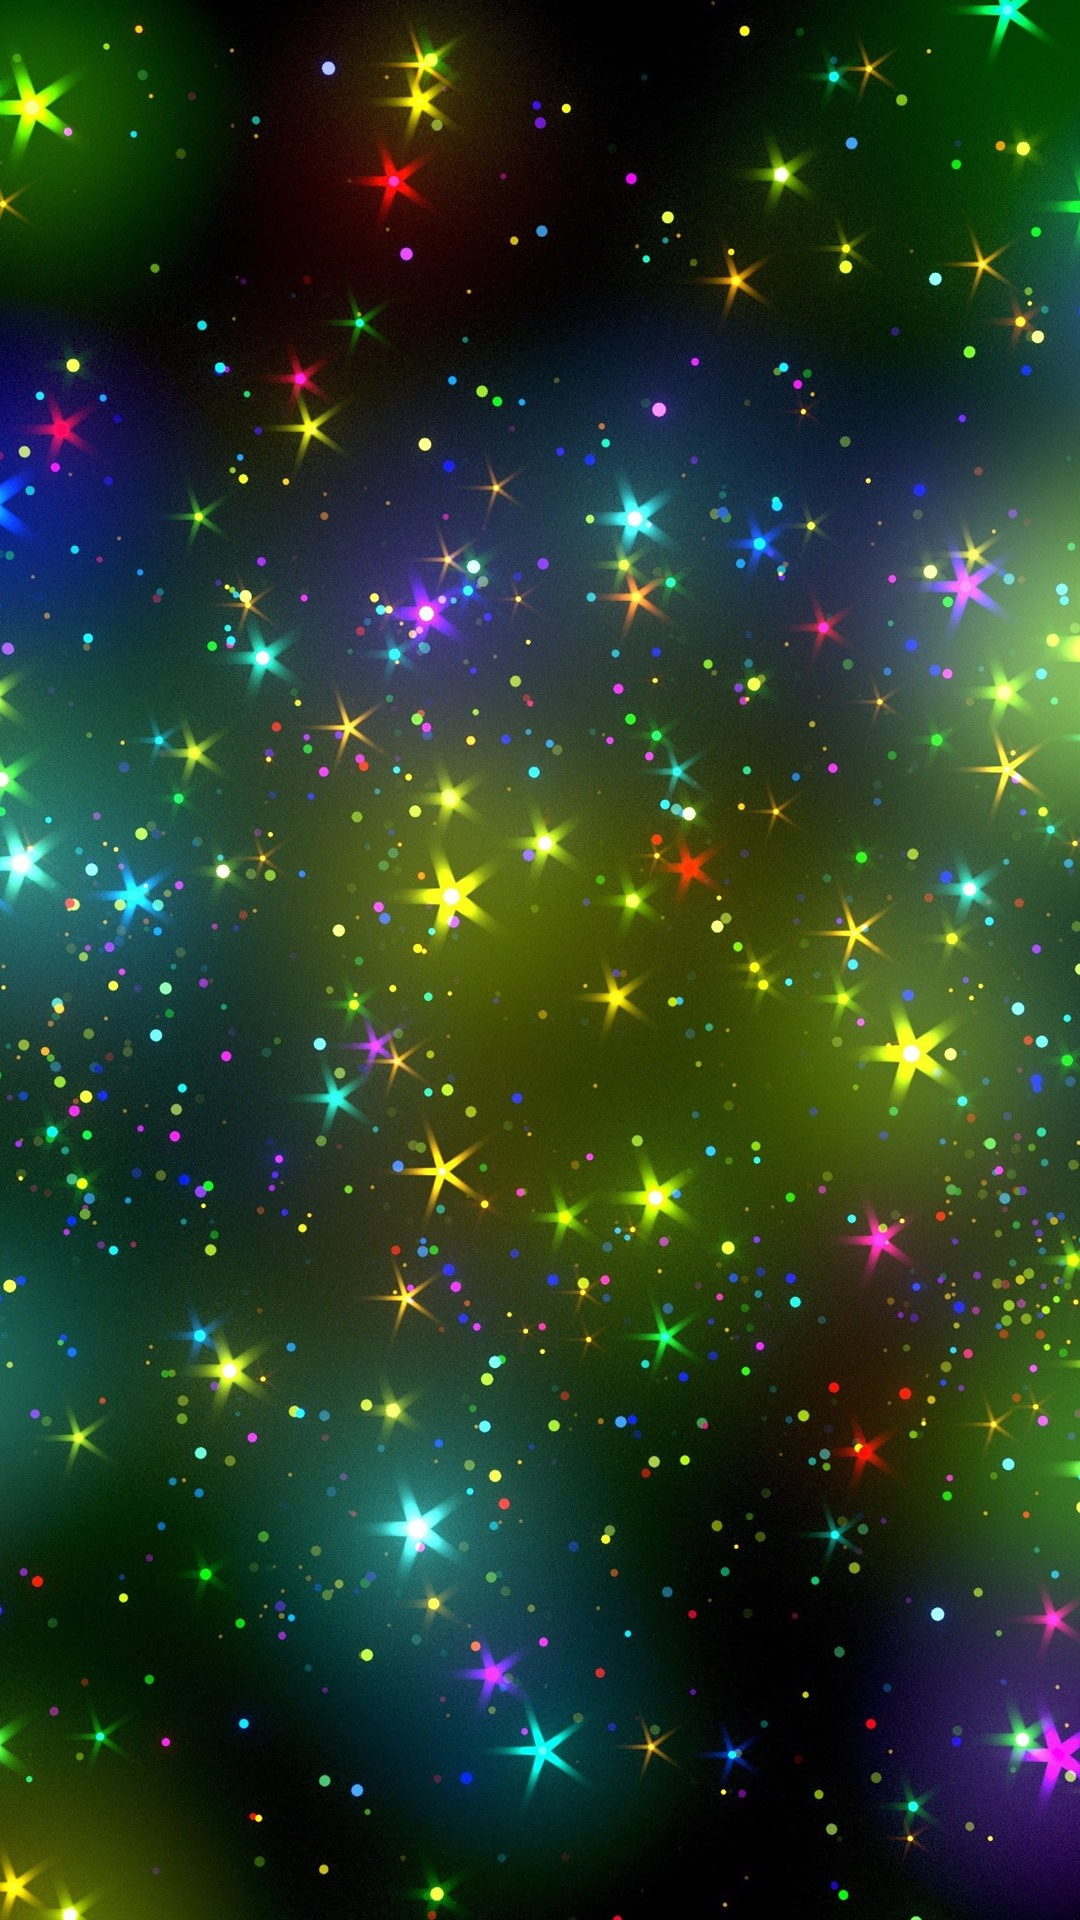 Iphone Wallpaper Colorful Stars, Sky, Abstract Design - Phone Background Colorful Star Sky - HD Wallpaper